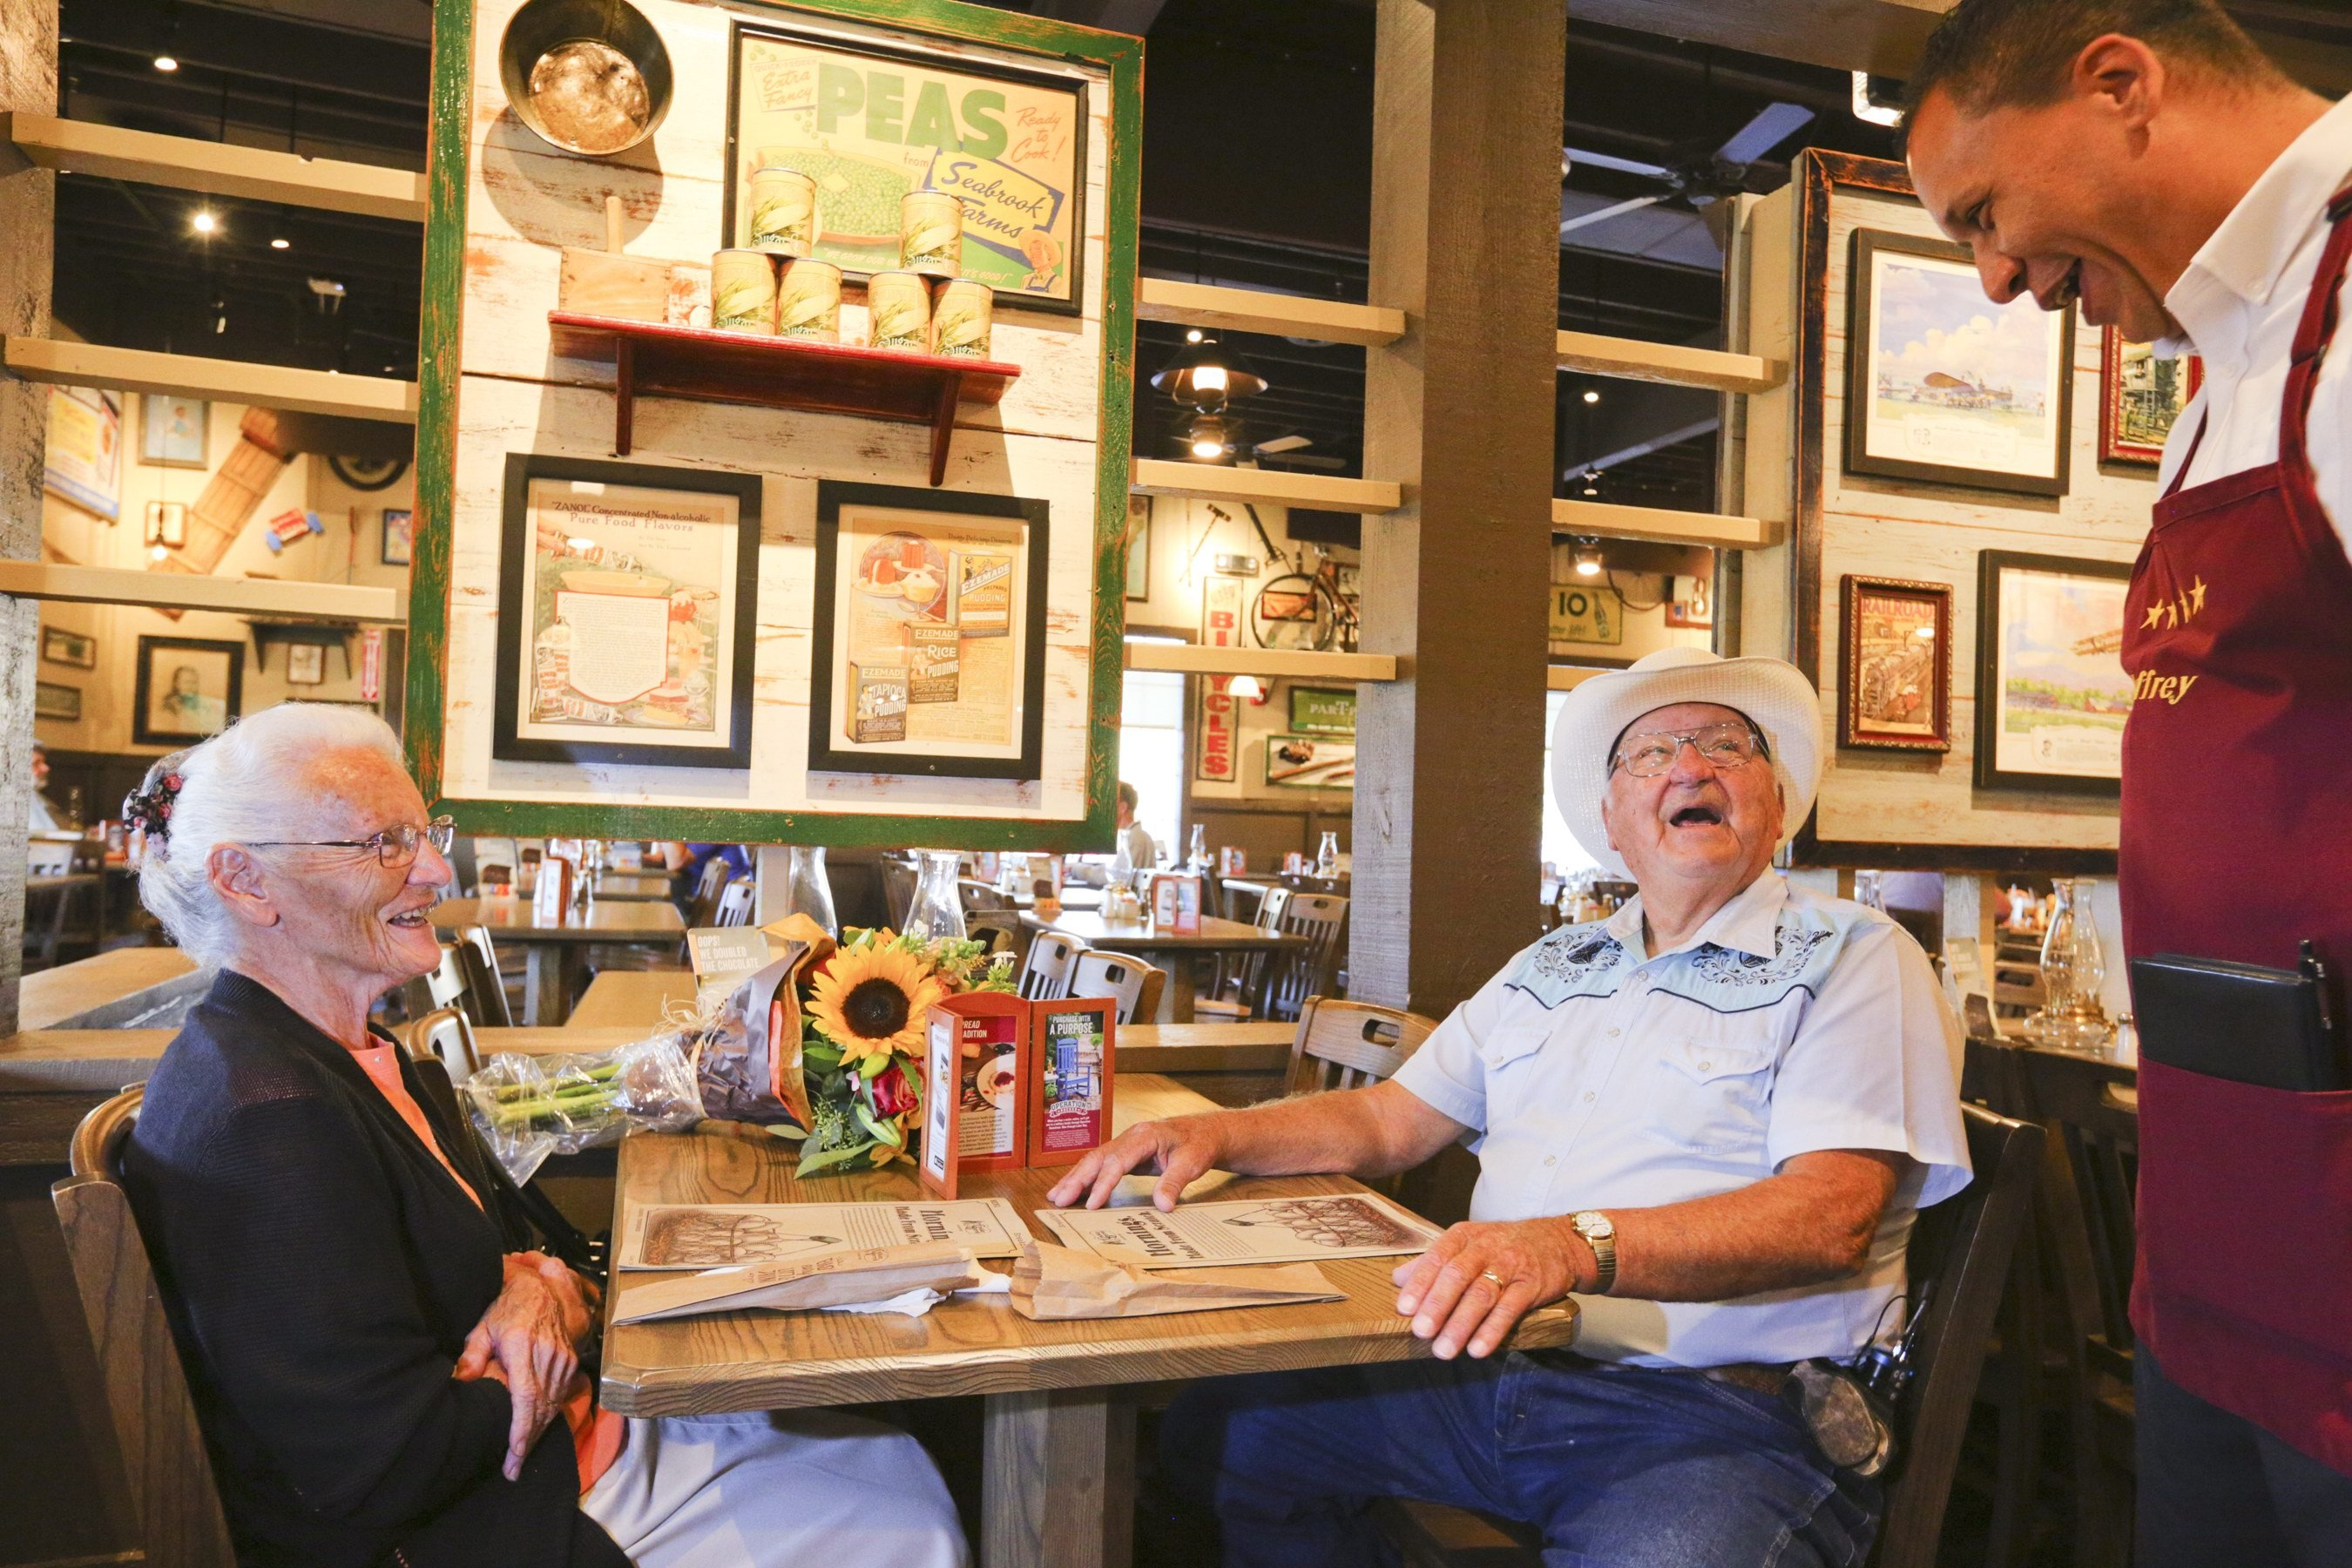 IN couple accomplishes goal of visiting every Cracker Barrel